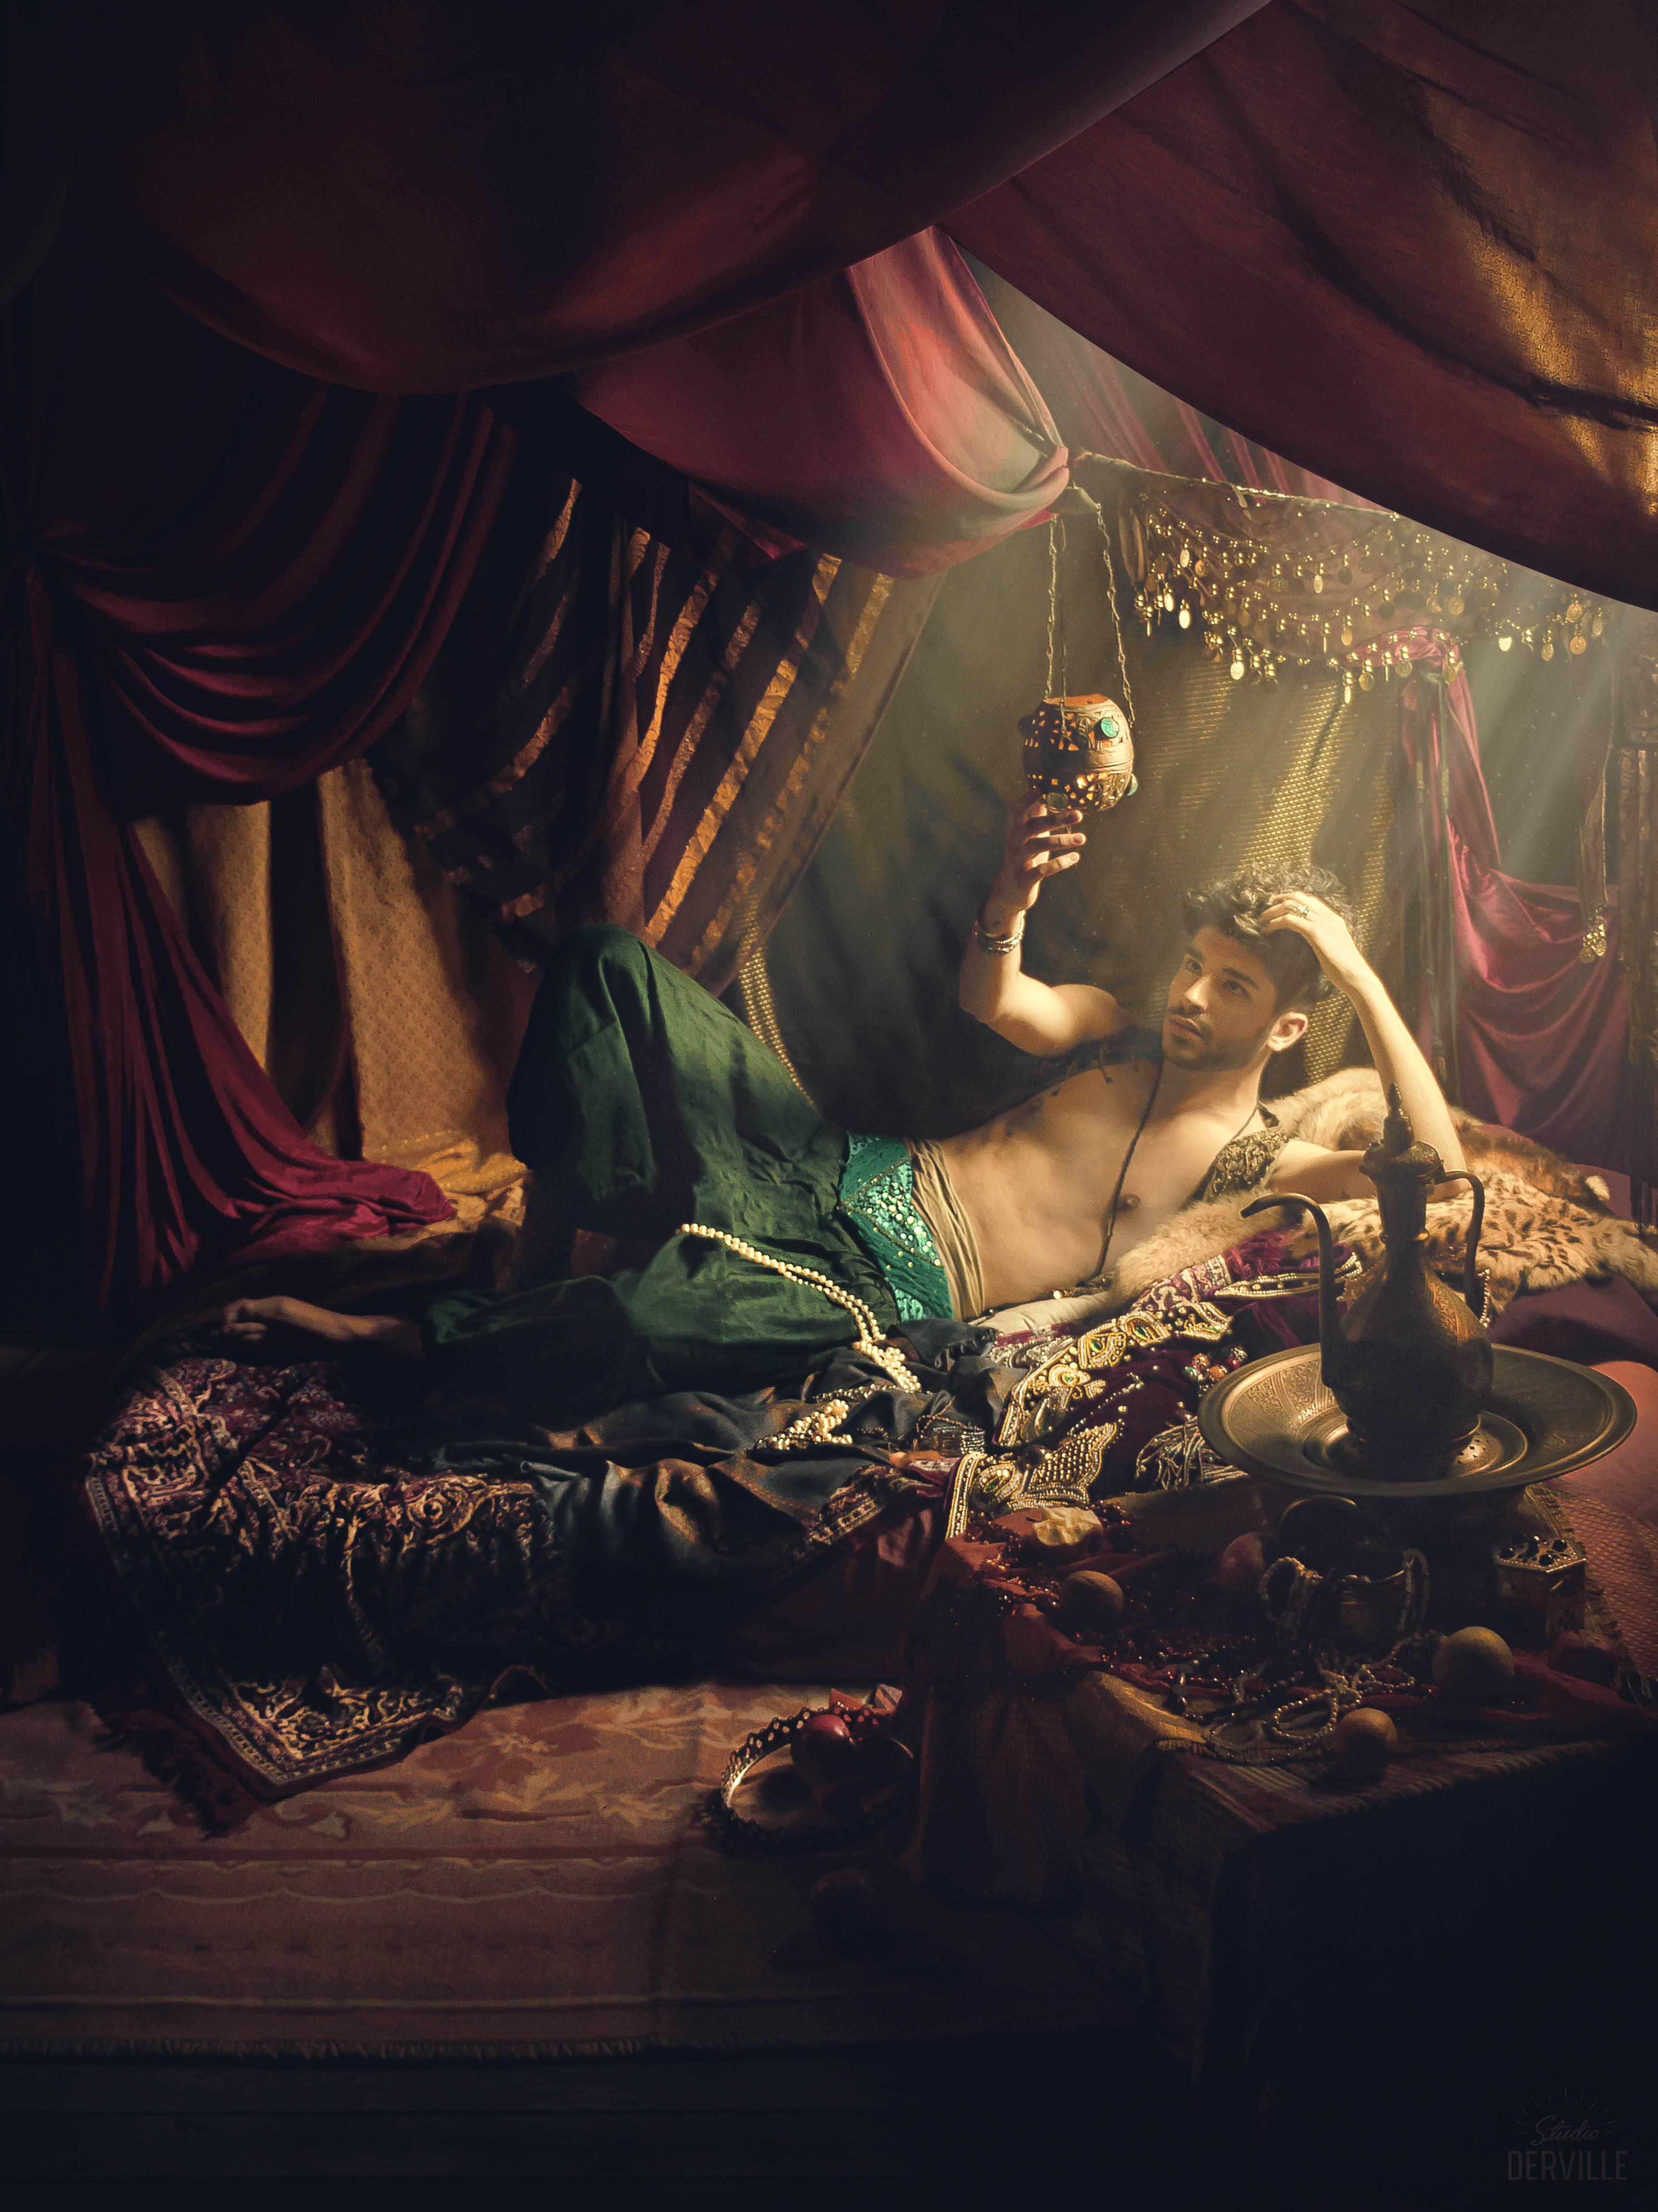 Orientalism - The prince